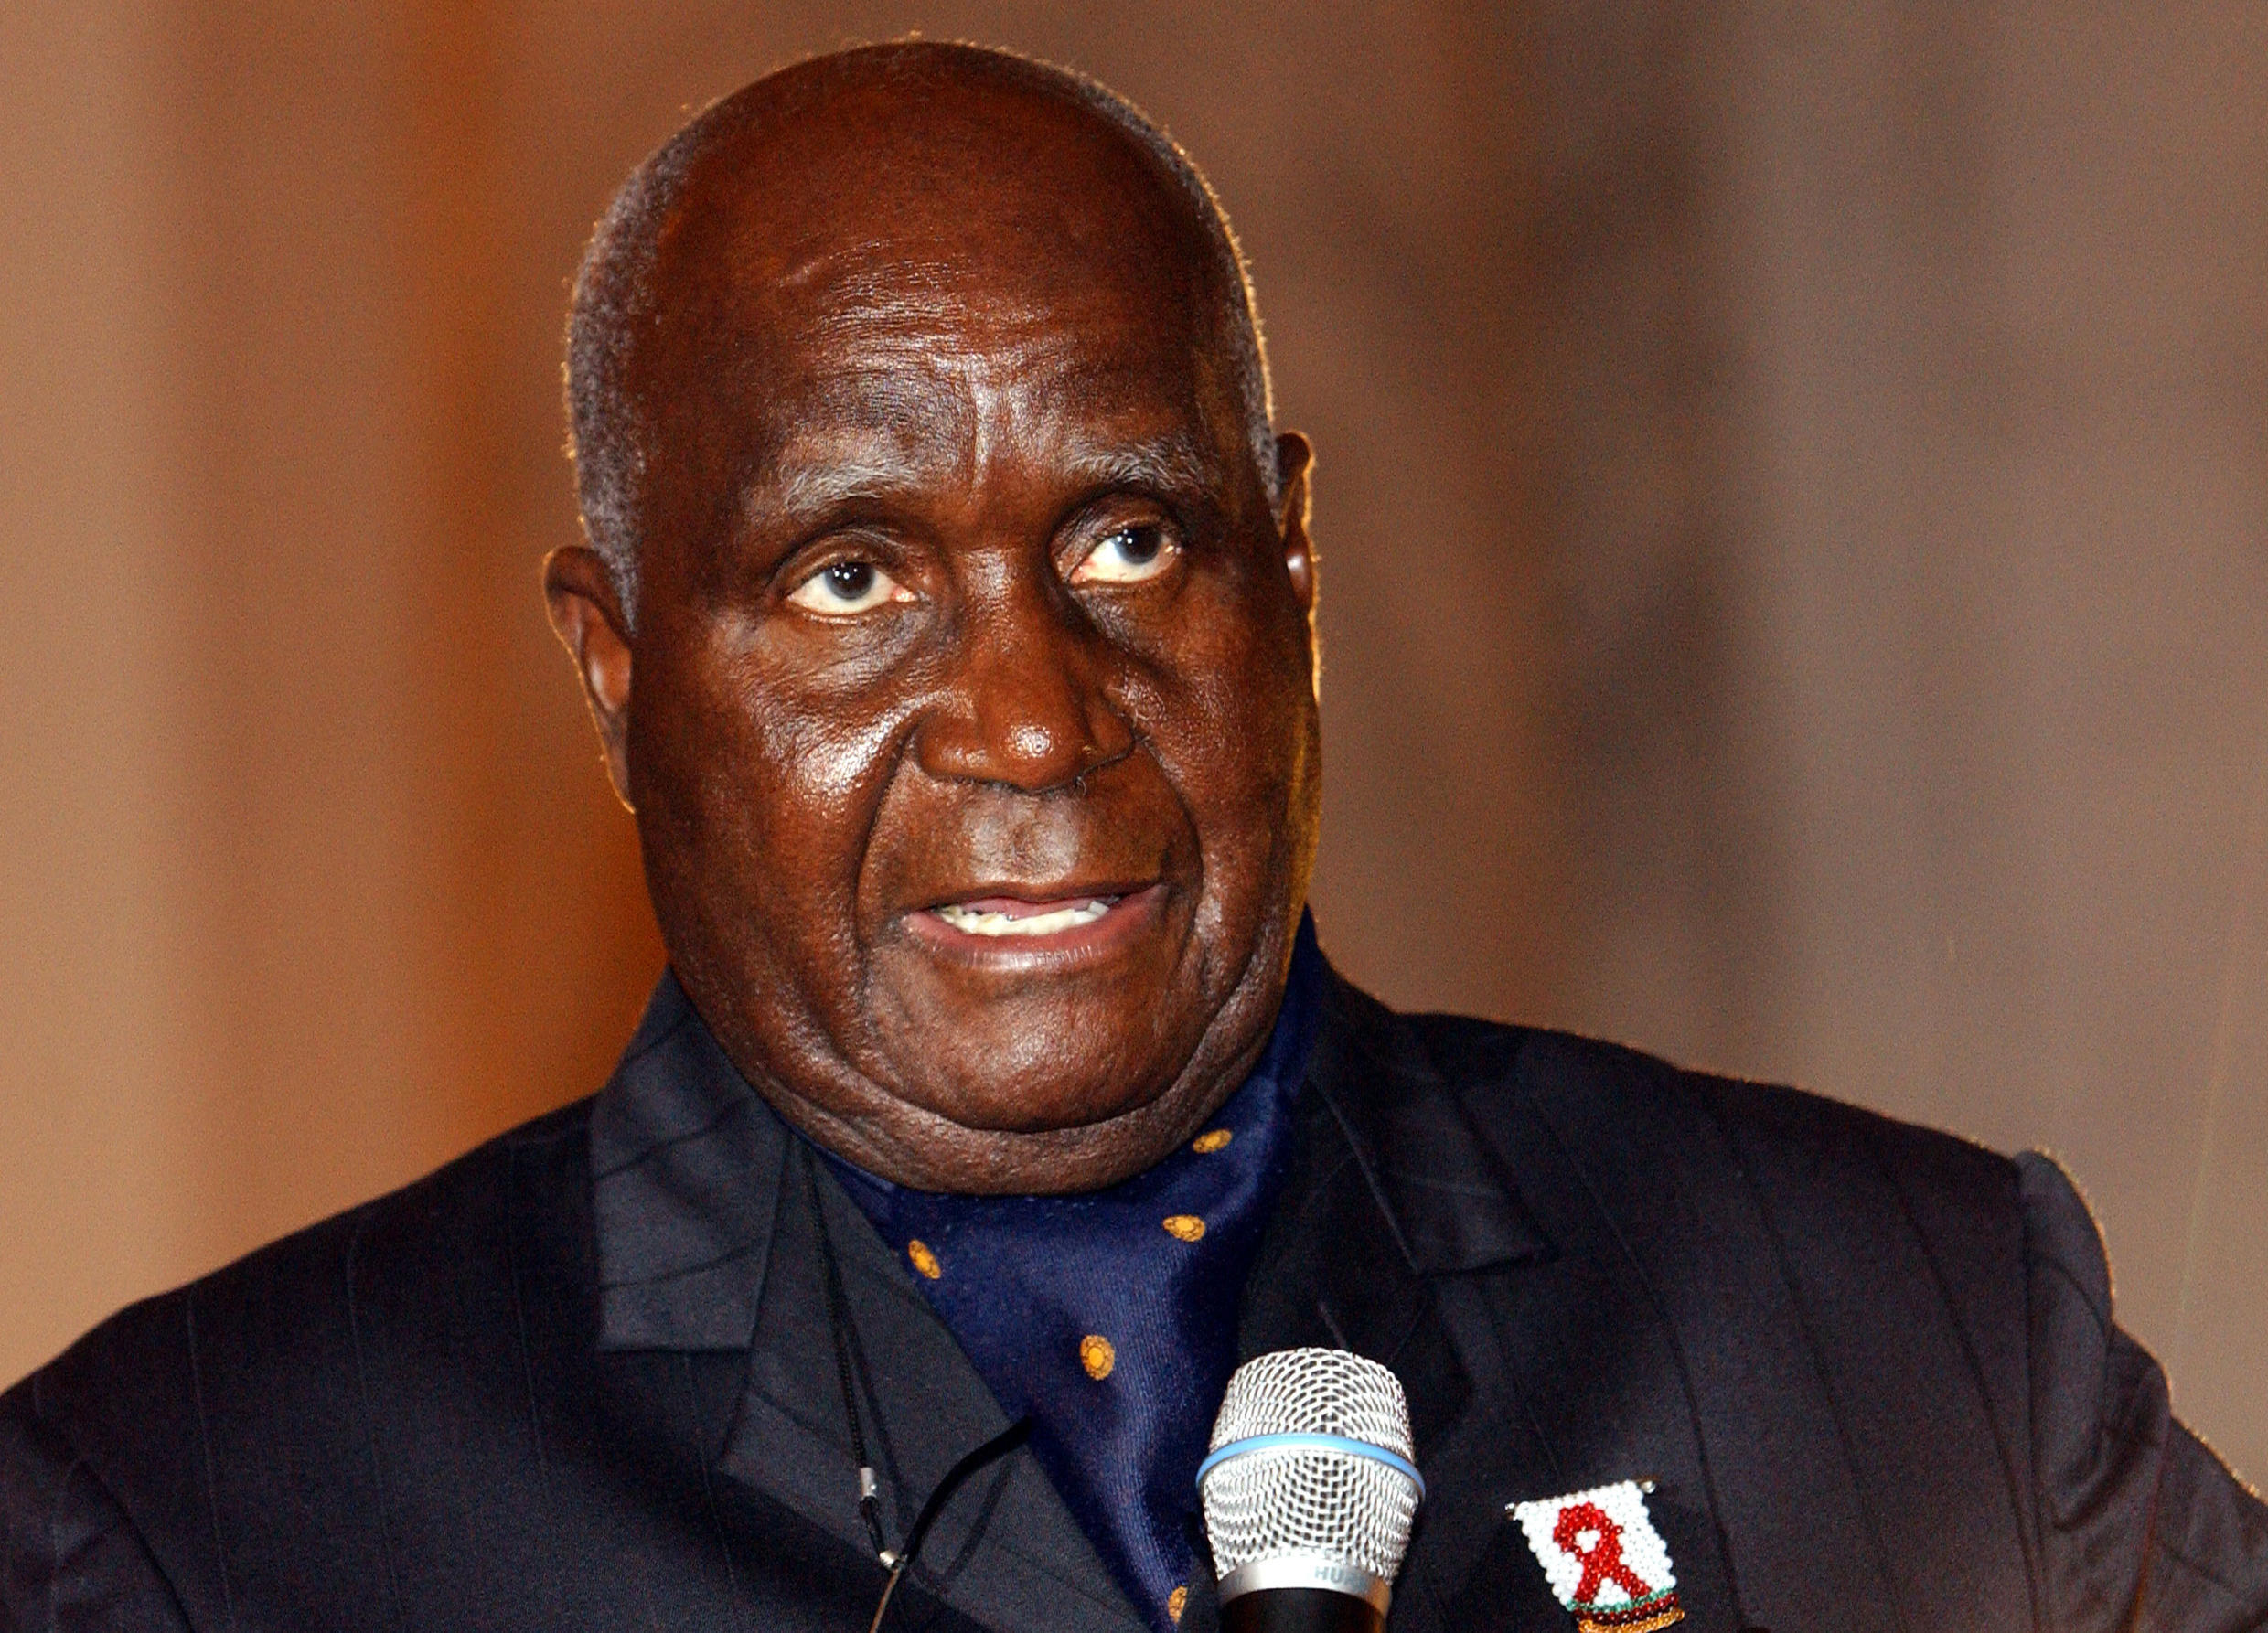 Kenneth  Kaunda was a hero of the struggle against white rule in southern Africa